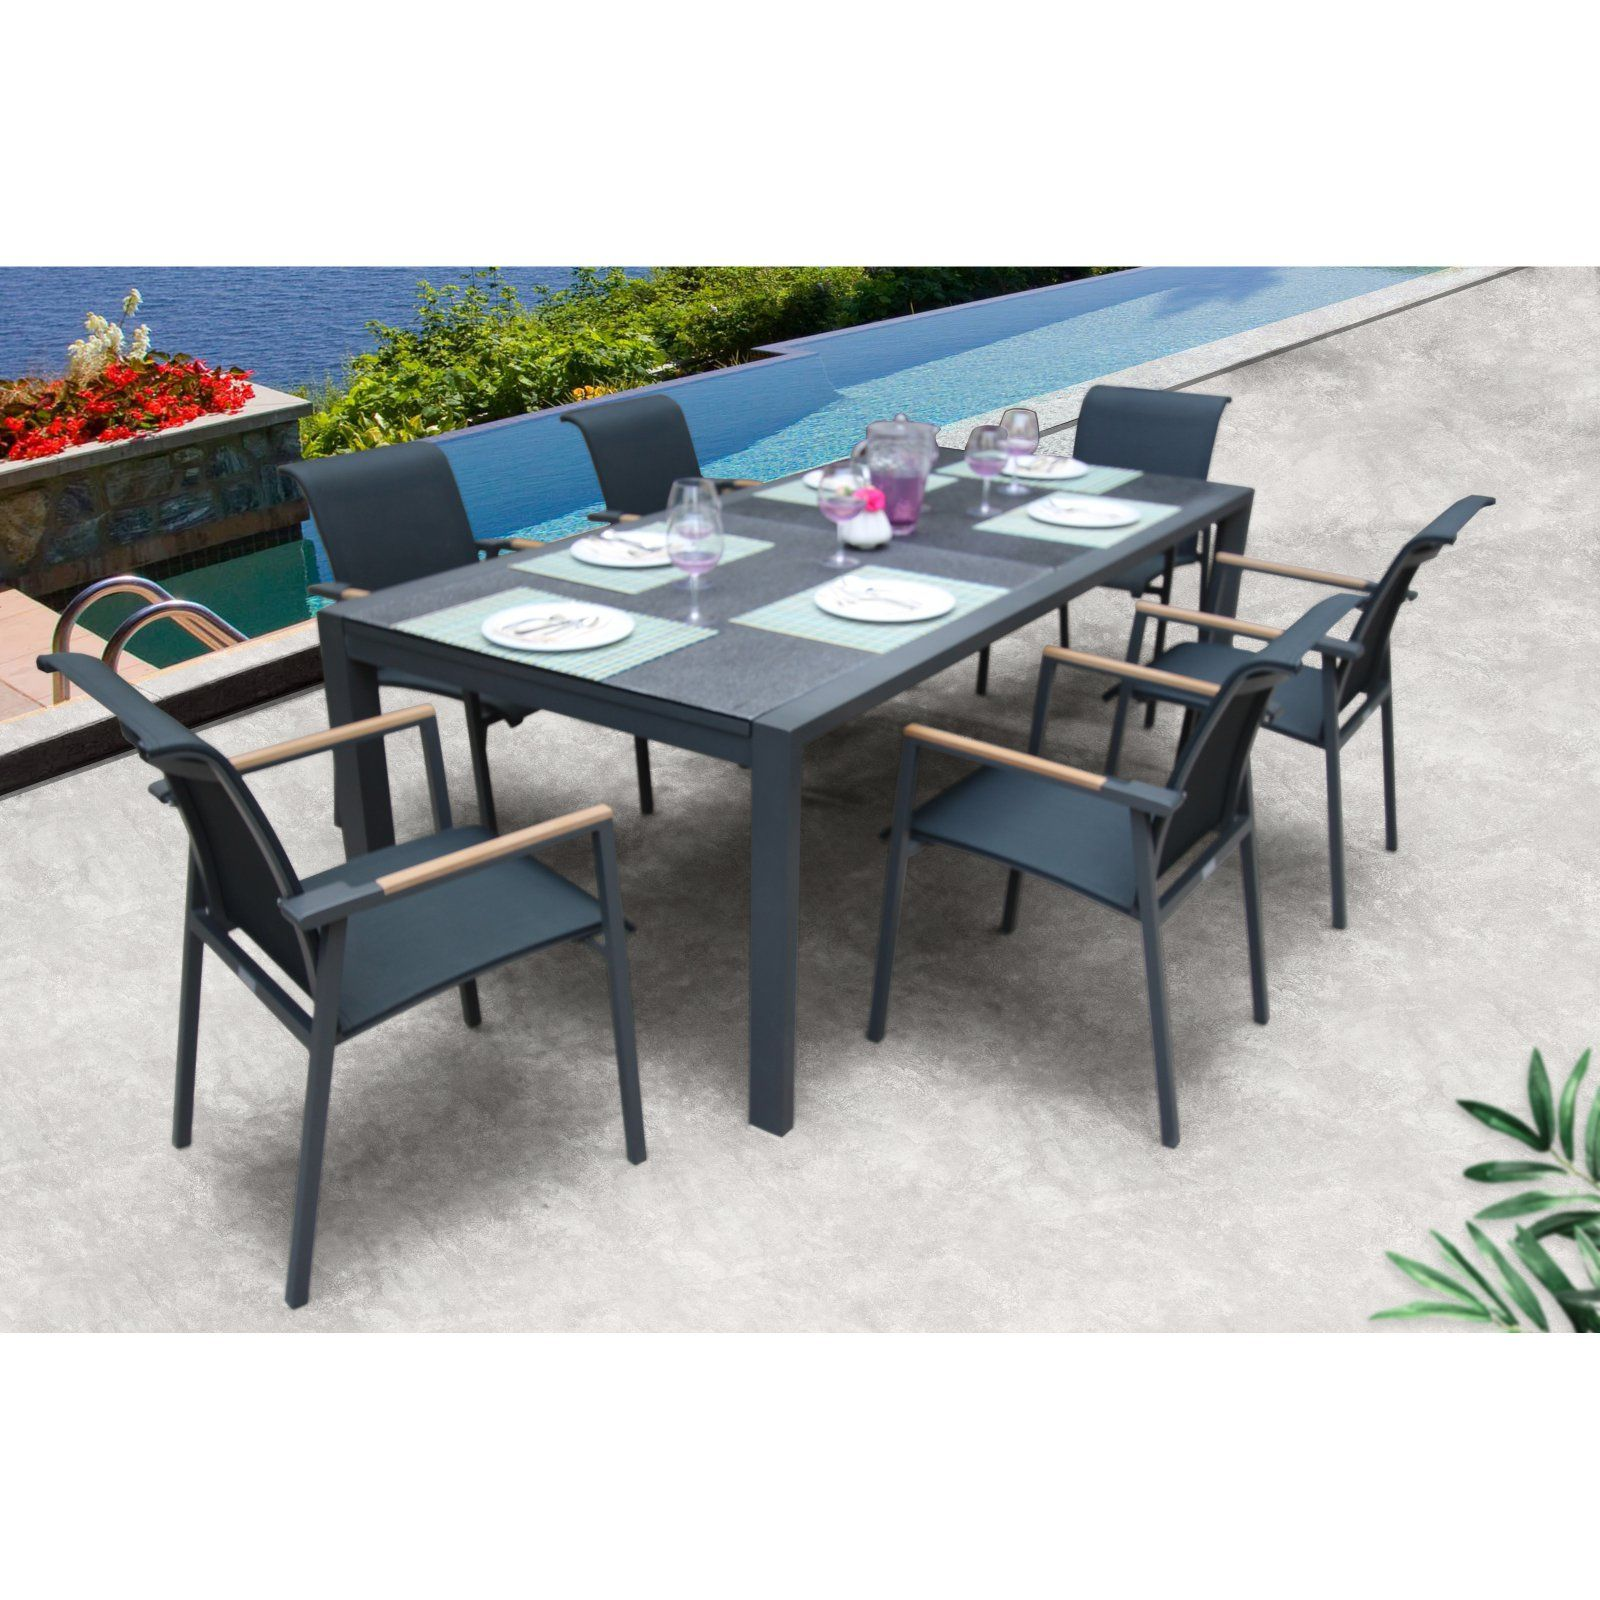 Outdoor Bellini Home And Gardens Anew Aluminum 7 Piece Patio Dining Set Patio Dining Set Modern Outdoor Dining Modern Outdoor Dining Sets